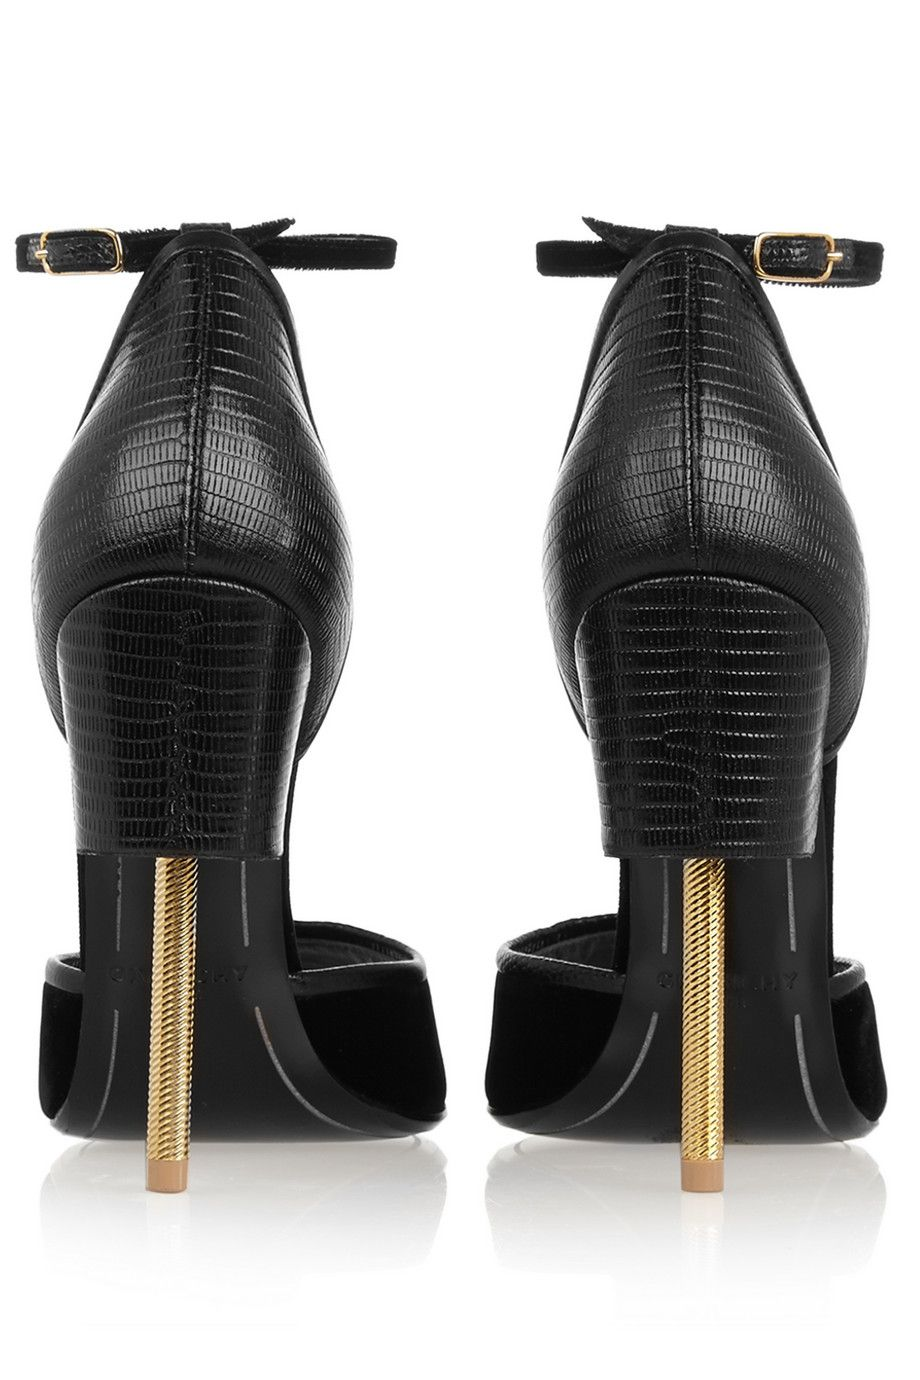 Givenchy | Matilda sandals in black lizard-effect leather and velvet | NET-A-PORTER.COM